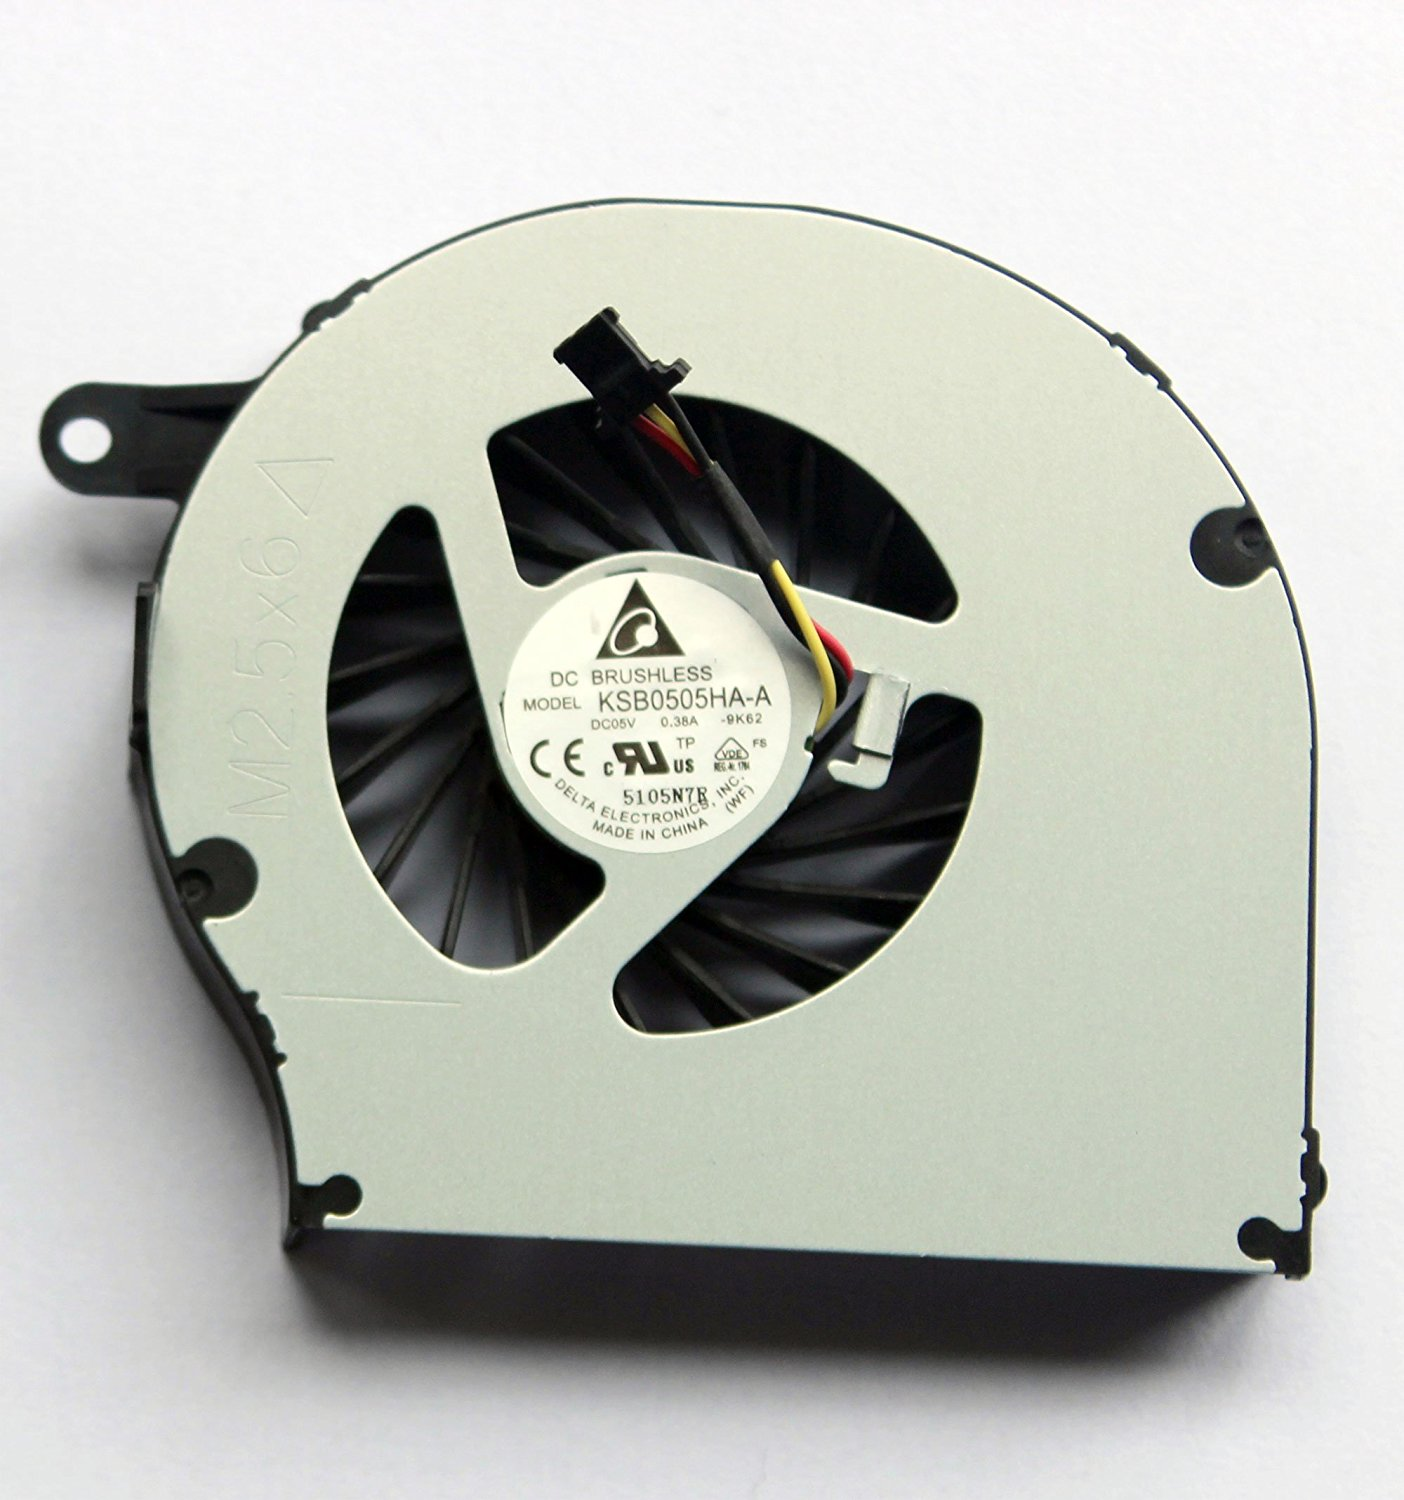 CPU Cooling Fan for HP Presario 500 510 520 530 C700 A900 Series New Notebook Replacement Accessories DC5V 0.5A P//N KSB0505HA 438528-001 AT010000200 DFS551305MC0T -6F51